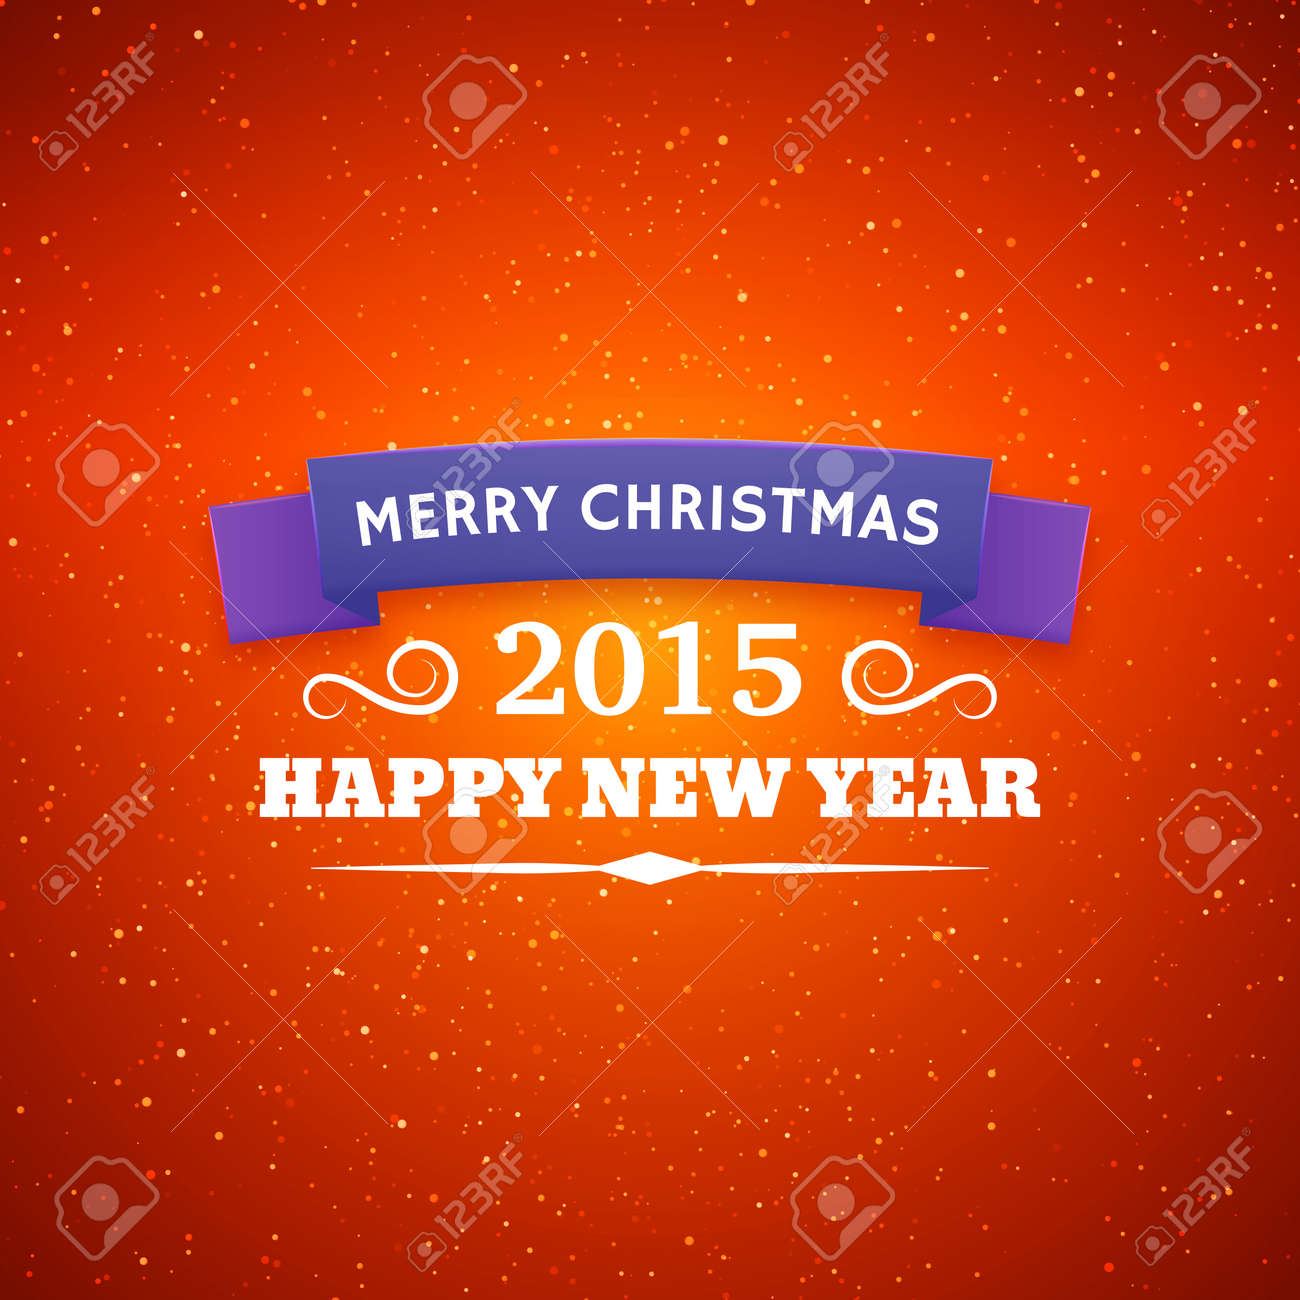 Merry Christmas Typography Styled Vector Background Greeting